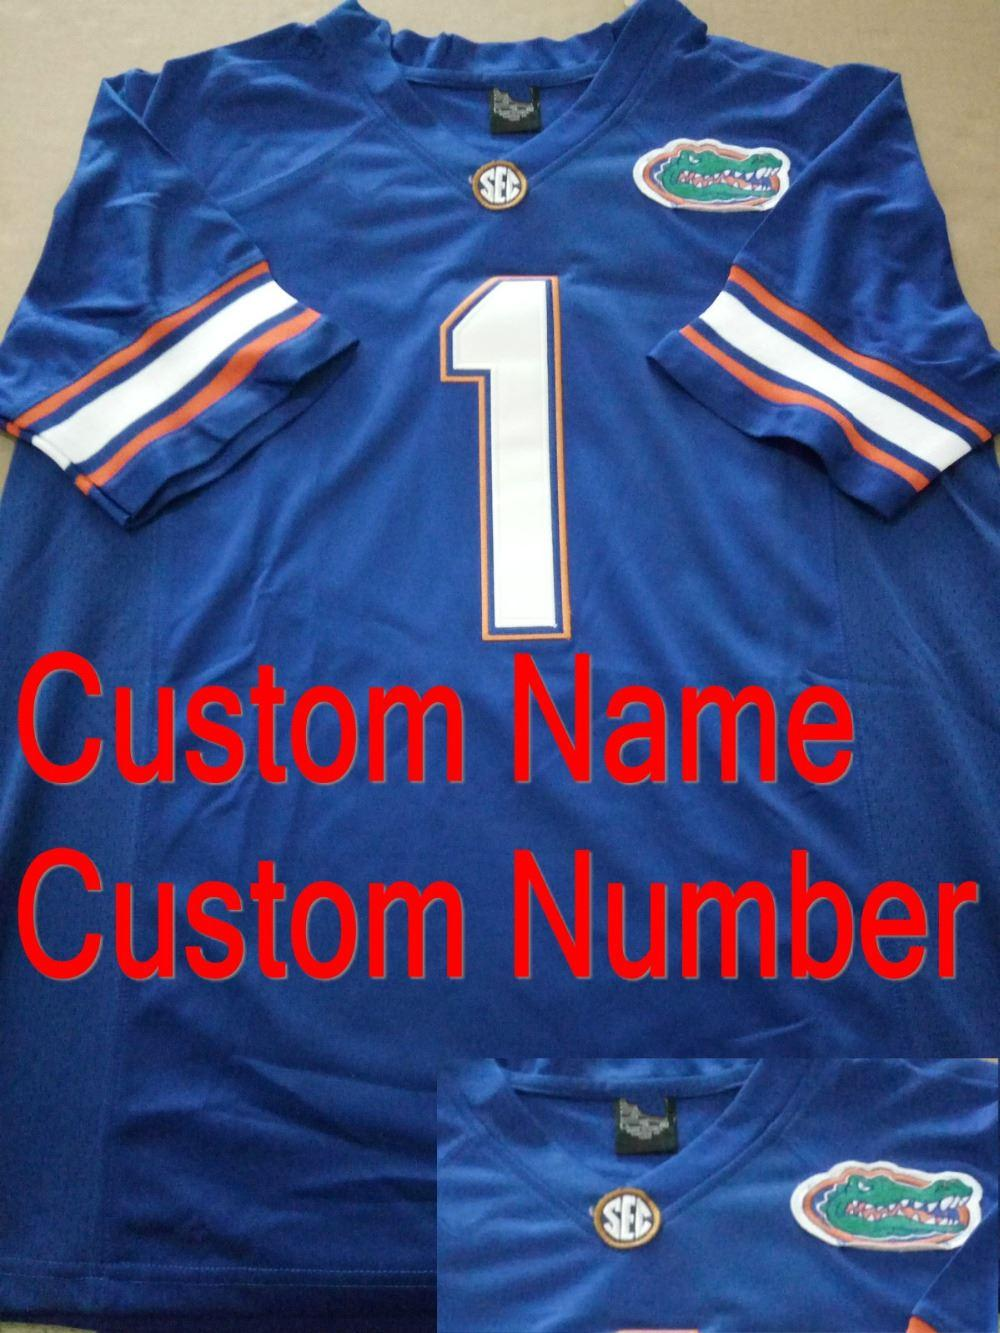 Thanks for view Cheap Jerseys,Cheap NFL Jerseys,NFL Jerseys China. Our company specializes in the field of sport jerseys for many years, as Cheap jerseys, Cheap NFL jerseys, NFL Jerseys China Wholesale, football jerseys, Baseball jerseys, Basketball jerseys All of the jerseys are sewn on.